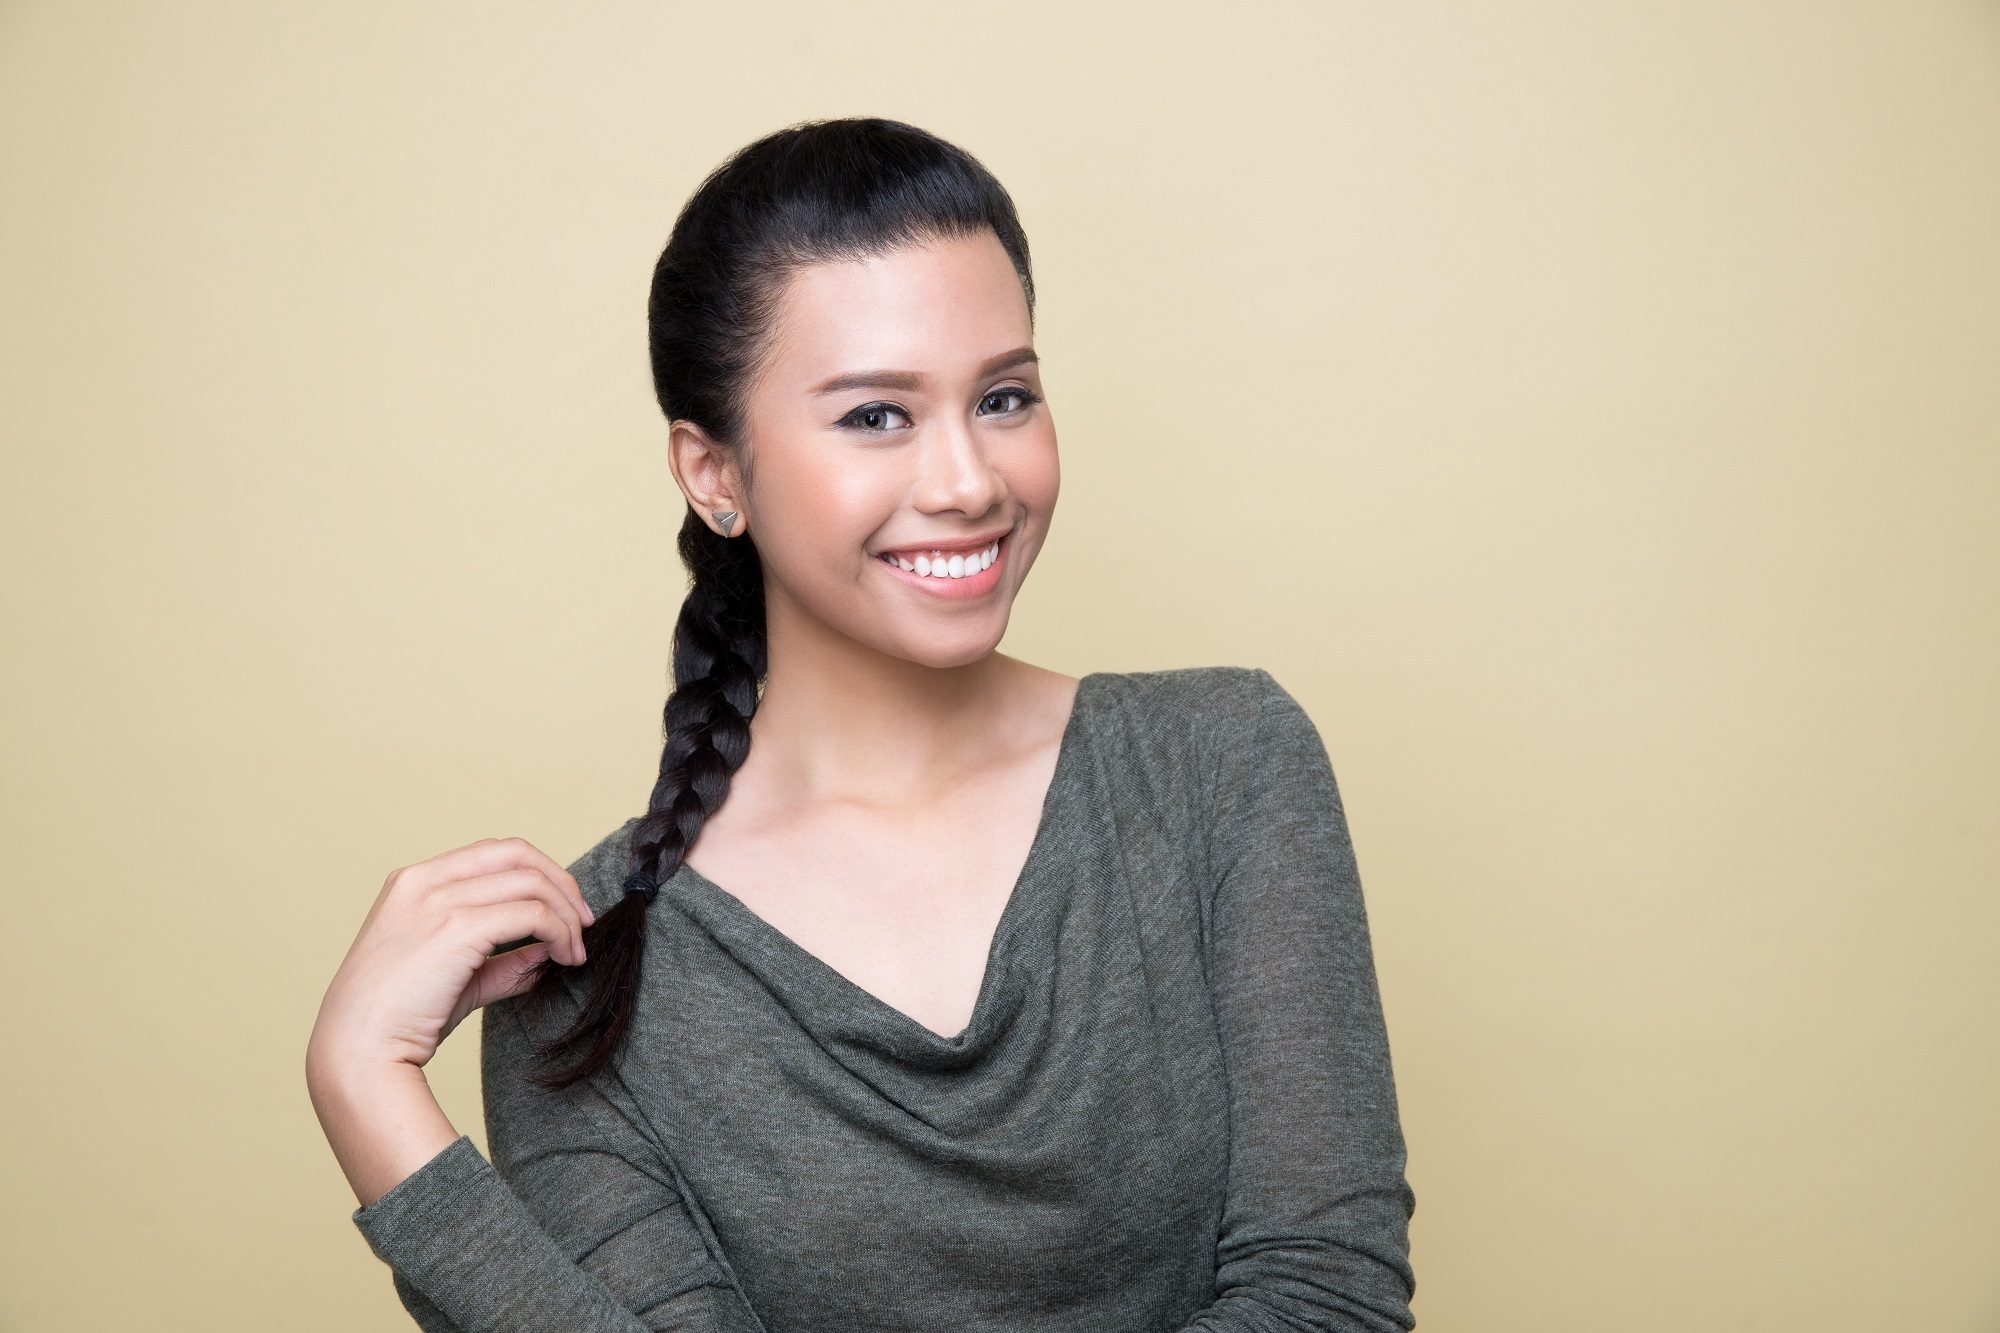 Advent calendar: Closeup shot of an Asian woman with long hair in French braid wearing a gray long-sleeved top